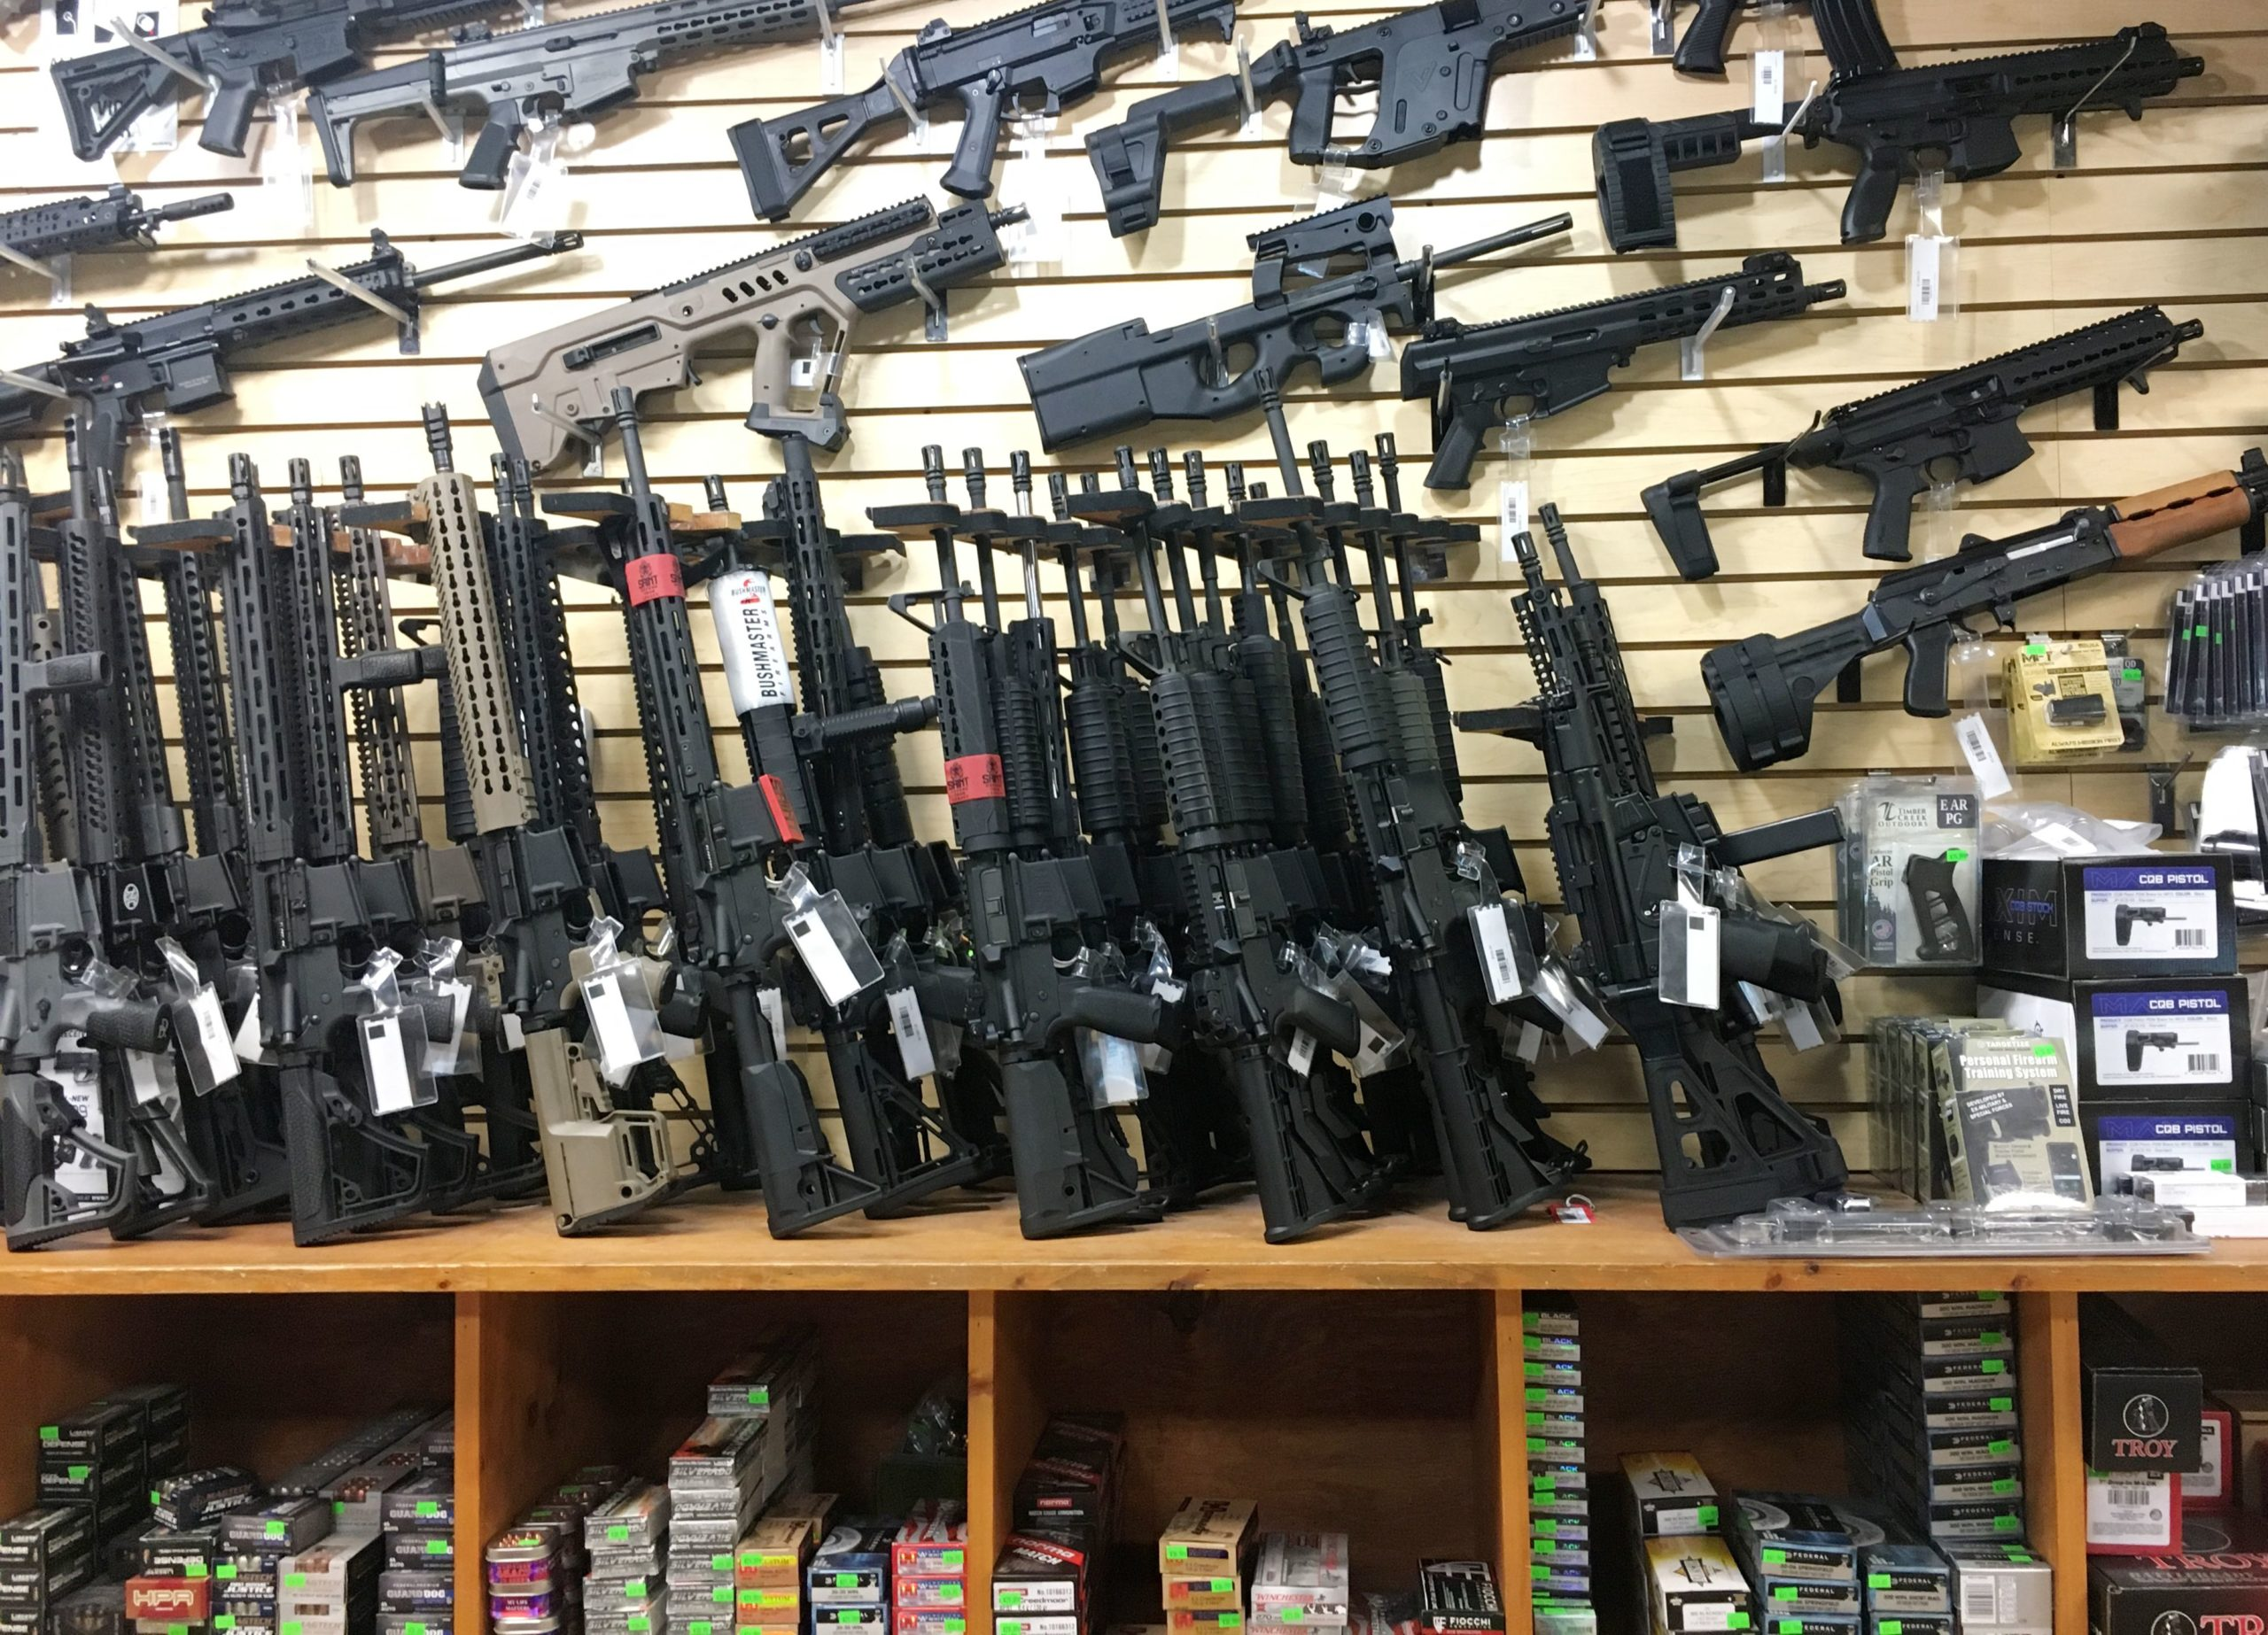 "Semi-automatic rifles are seen for sale in a gun shop in Las Vegas, Nevada on October 4, 2017. - Mass killer Stephen Paddock used semi-automatic weapons which he modified with ""bump-fire stock"" to make them fire at the same speed as a fully automatic weapon when he killed 58 people and injured over 500 in the worst mass shooting in modern American history on October 1, 2017 at a country music festival in Las Vegas. (ROBYN BECK/AFP via Getty Images)"